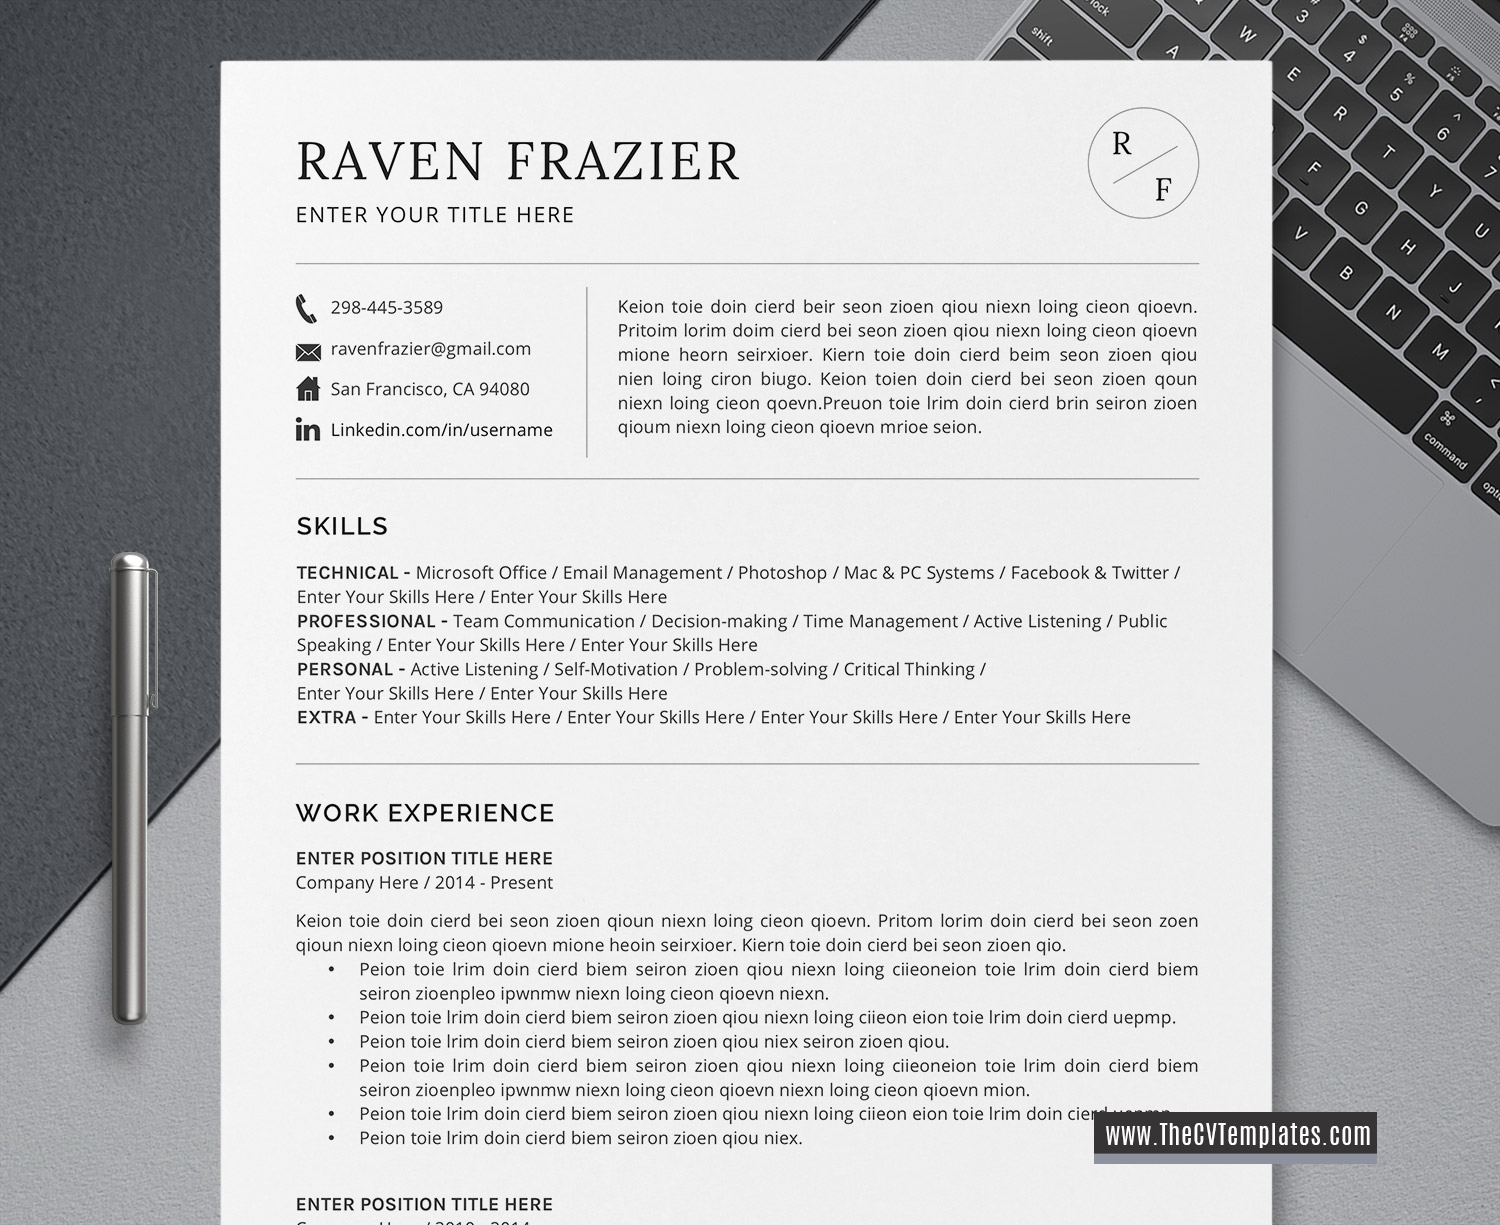 Simple And Basic Cv Template Word Cover Letter Minimalist Resume Professional Resume Editable Resume Functional Resume 1 2 3 Page Printable Curriculum Vitae Template Thecvtemplates Com